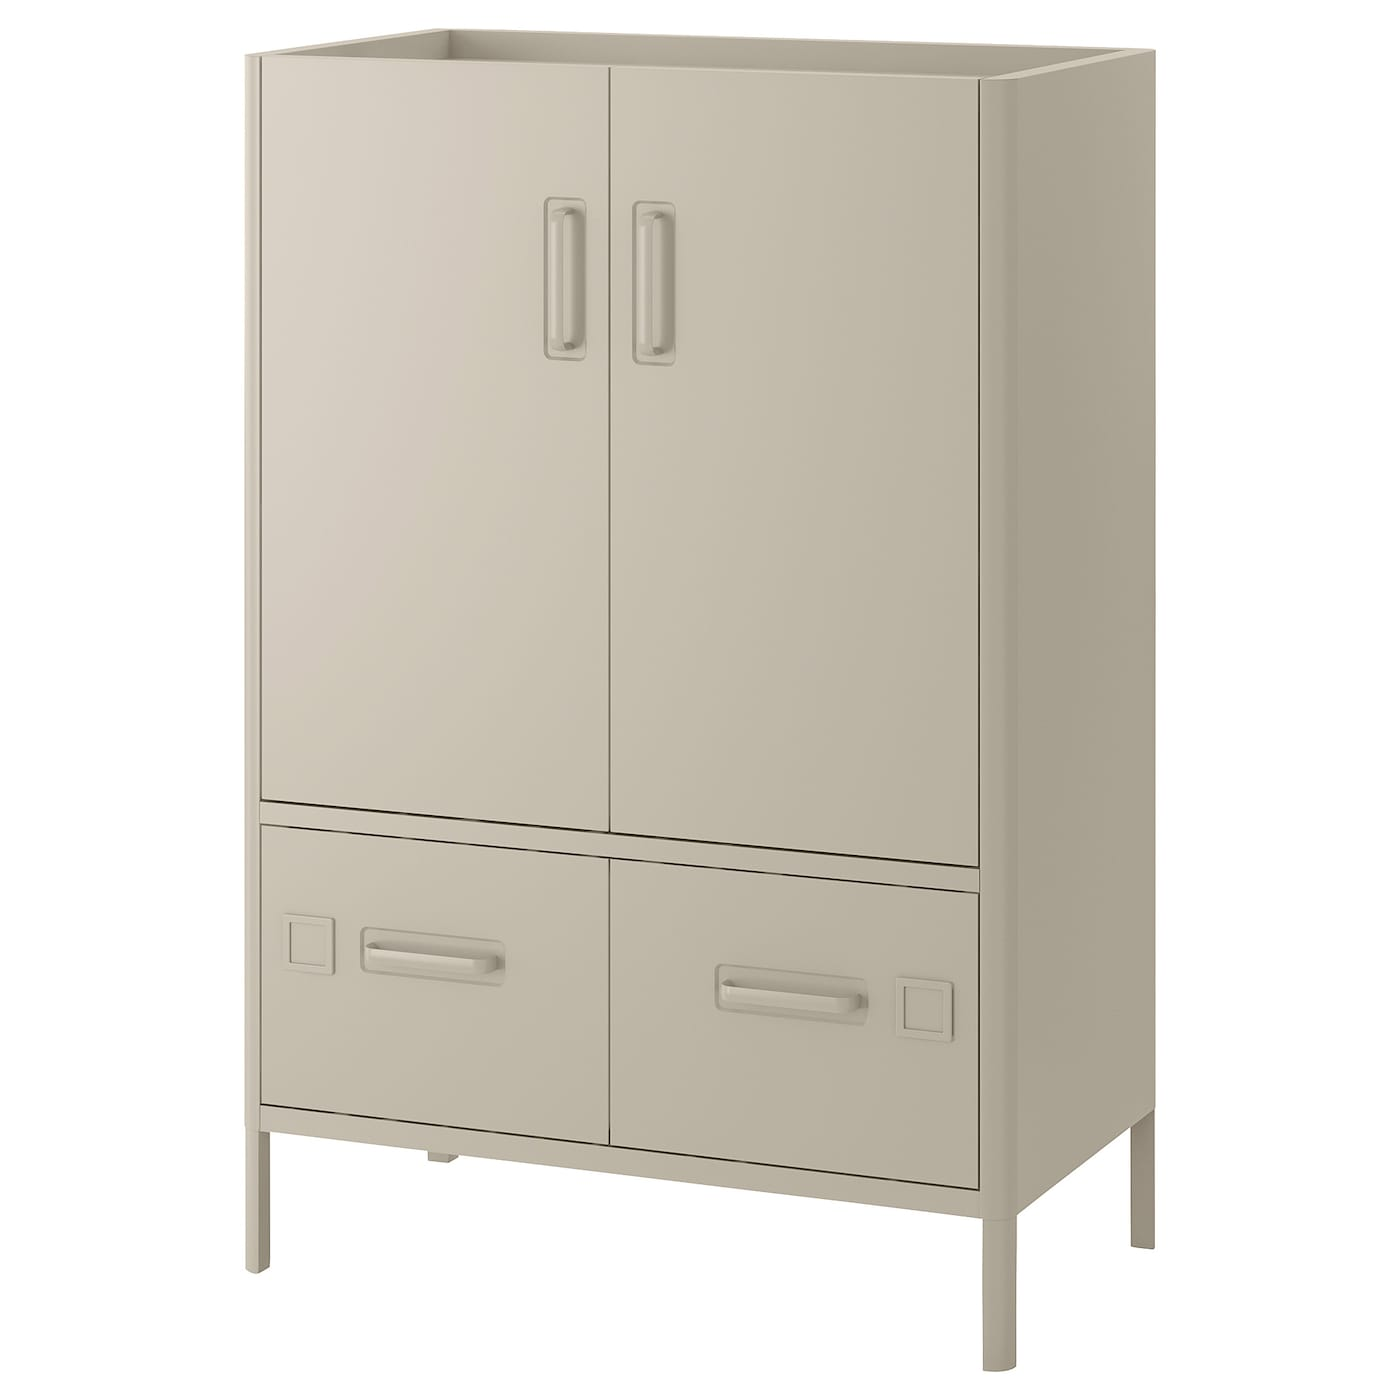 Beau IKEA IDÅSEN Cabinet With Smart Lock Integrated Damper Closes The Drawer  Silently And Gently.